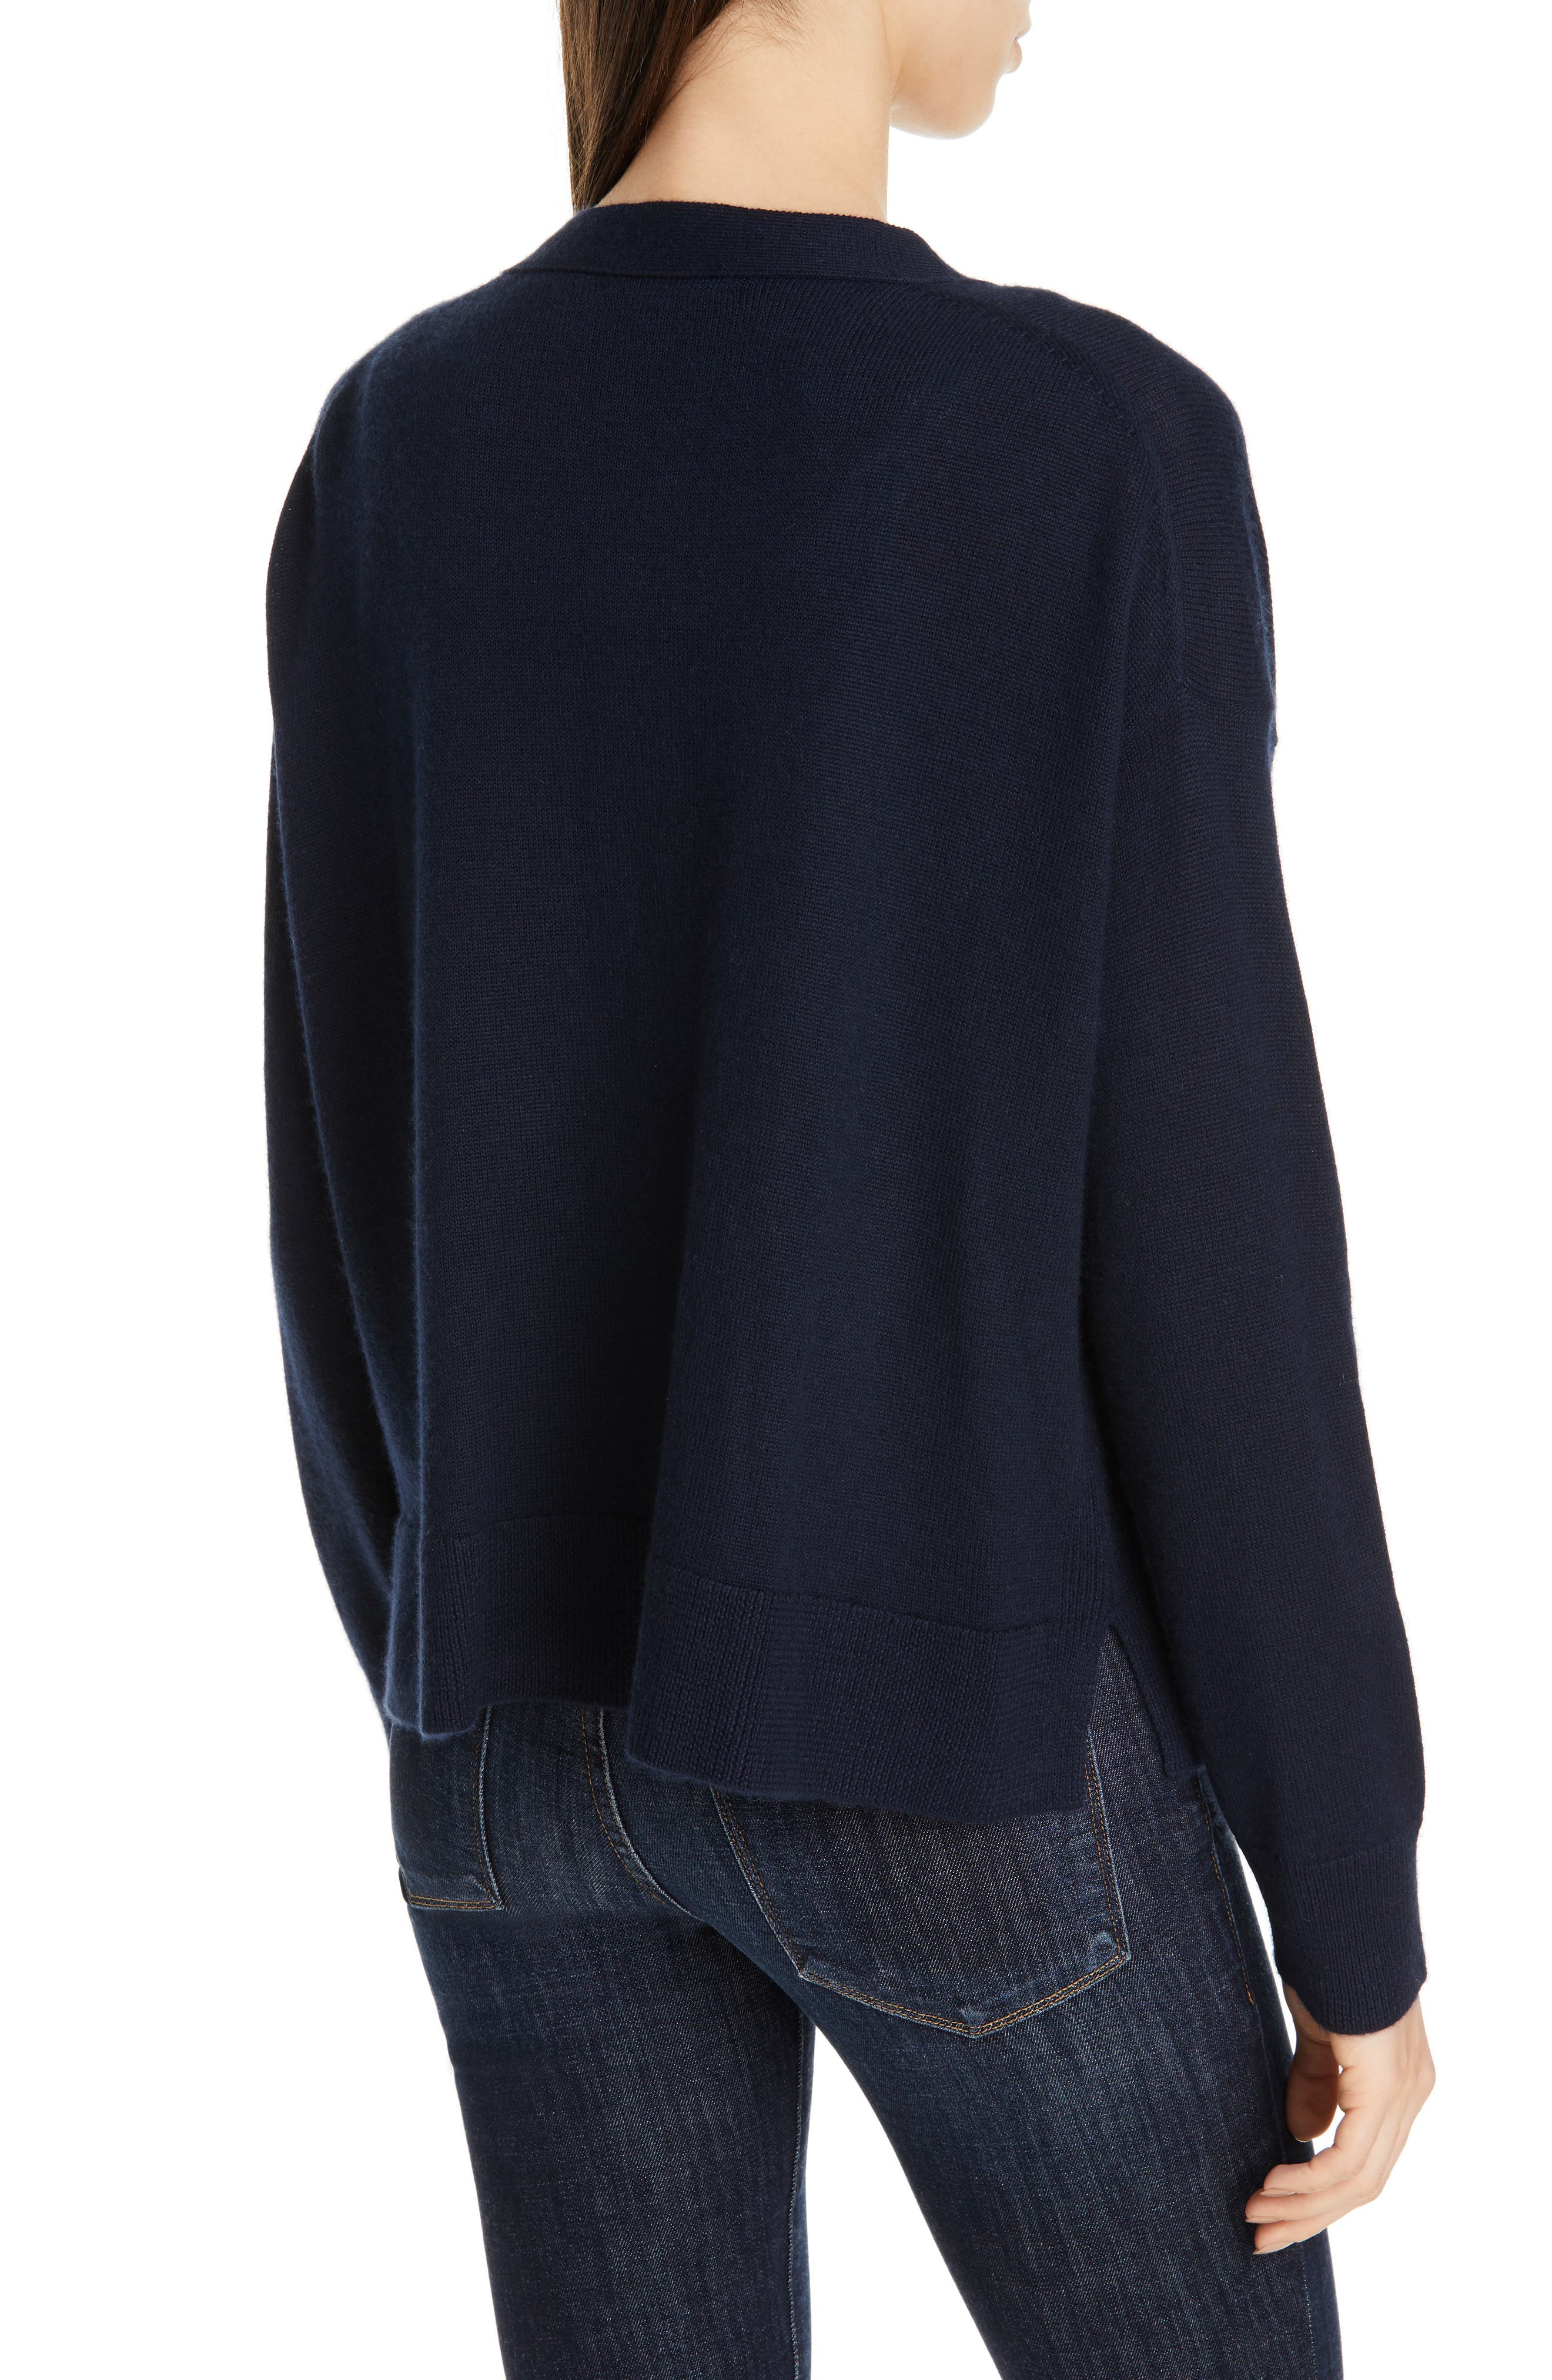 Button Up Cashmere & Linen Cardigan by Nordstrom Signature